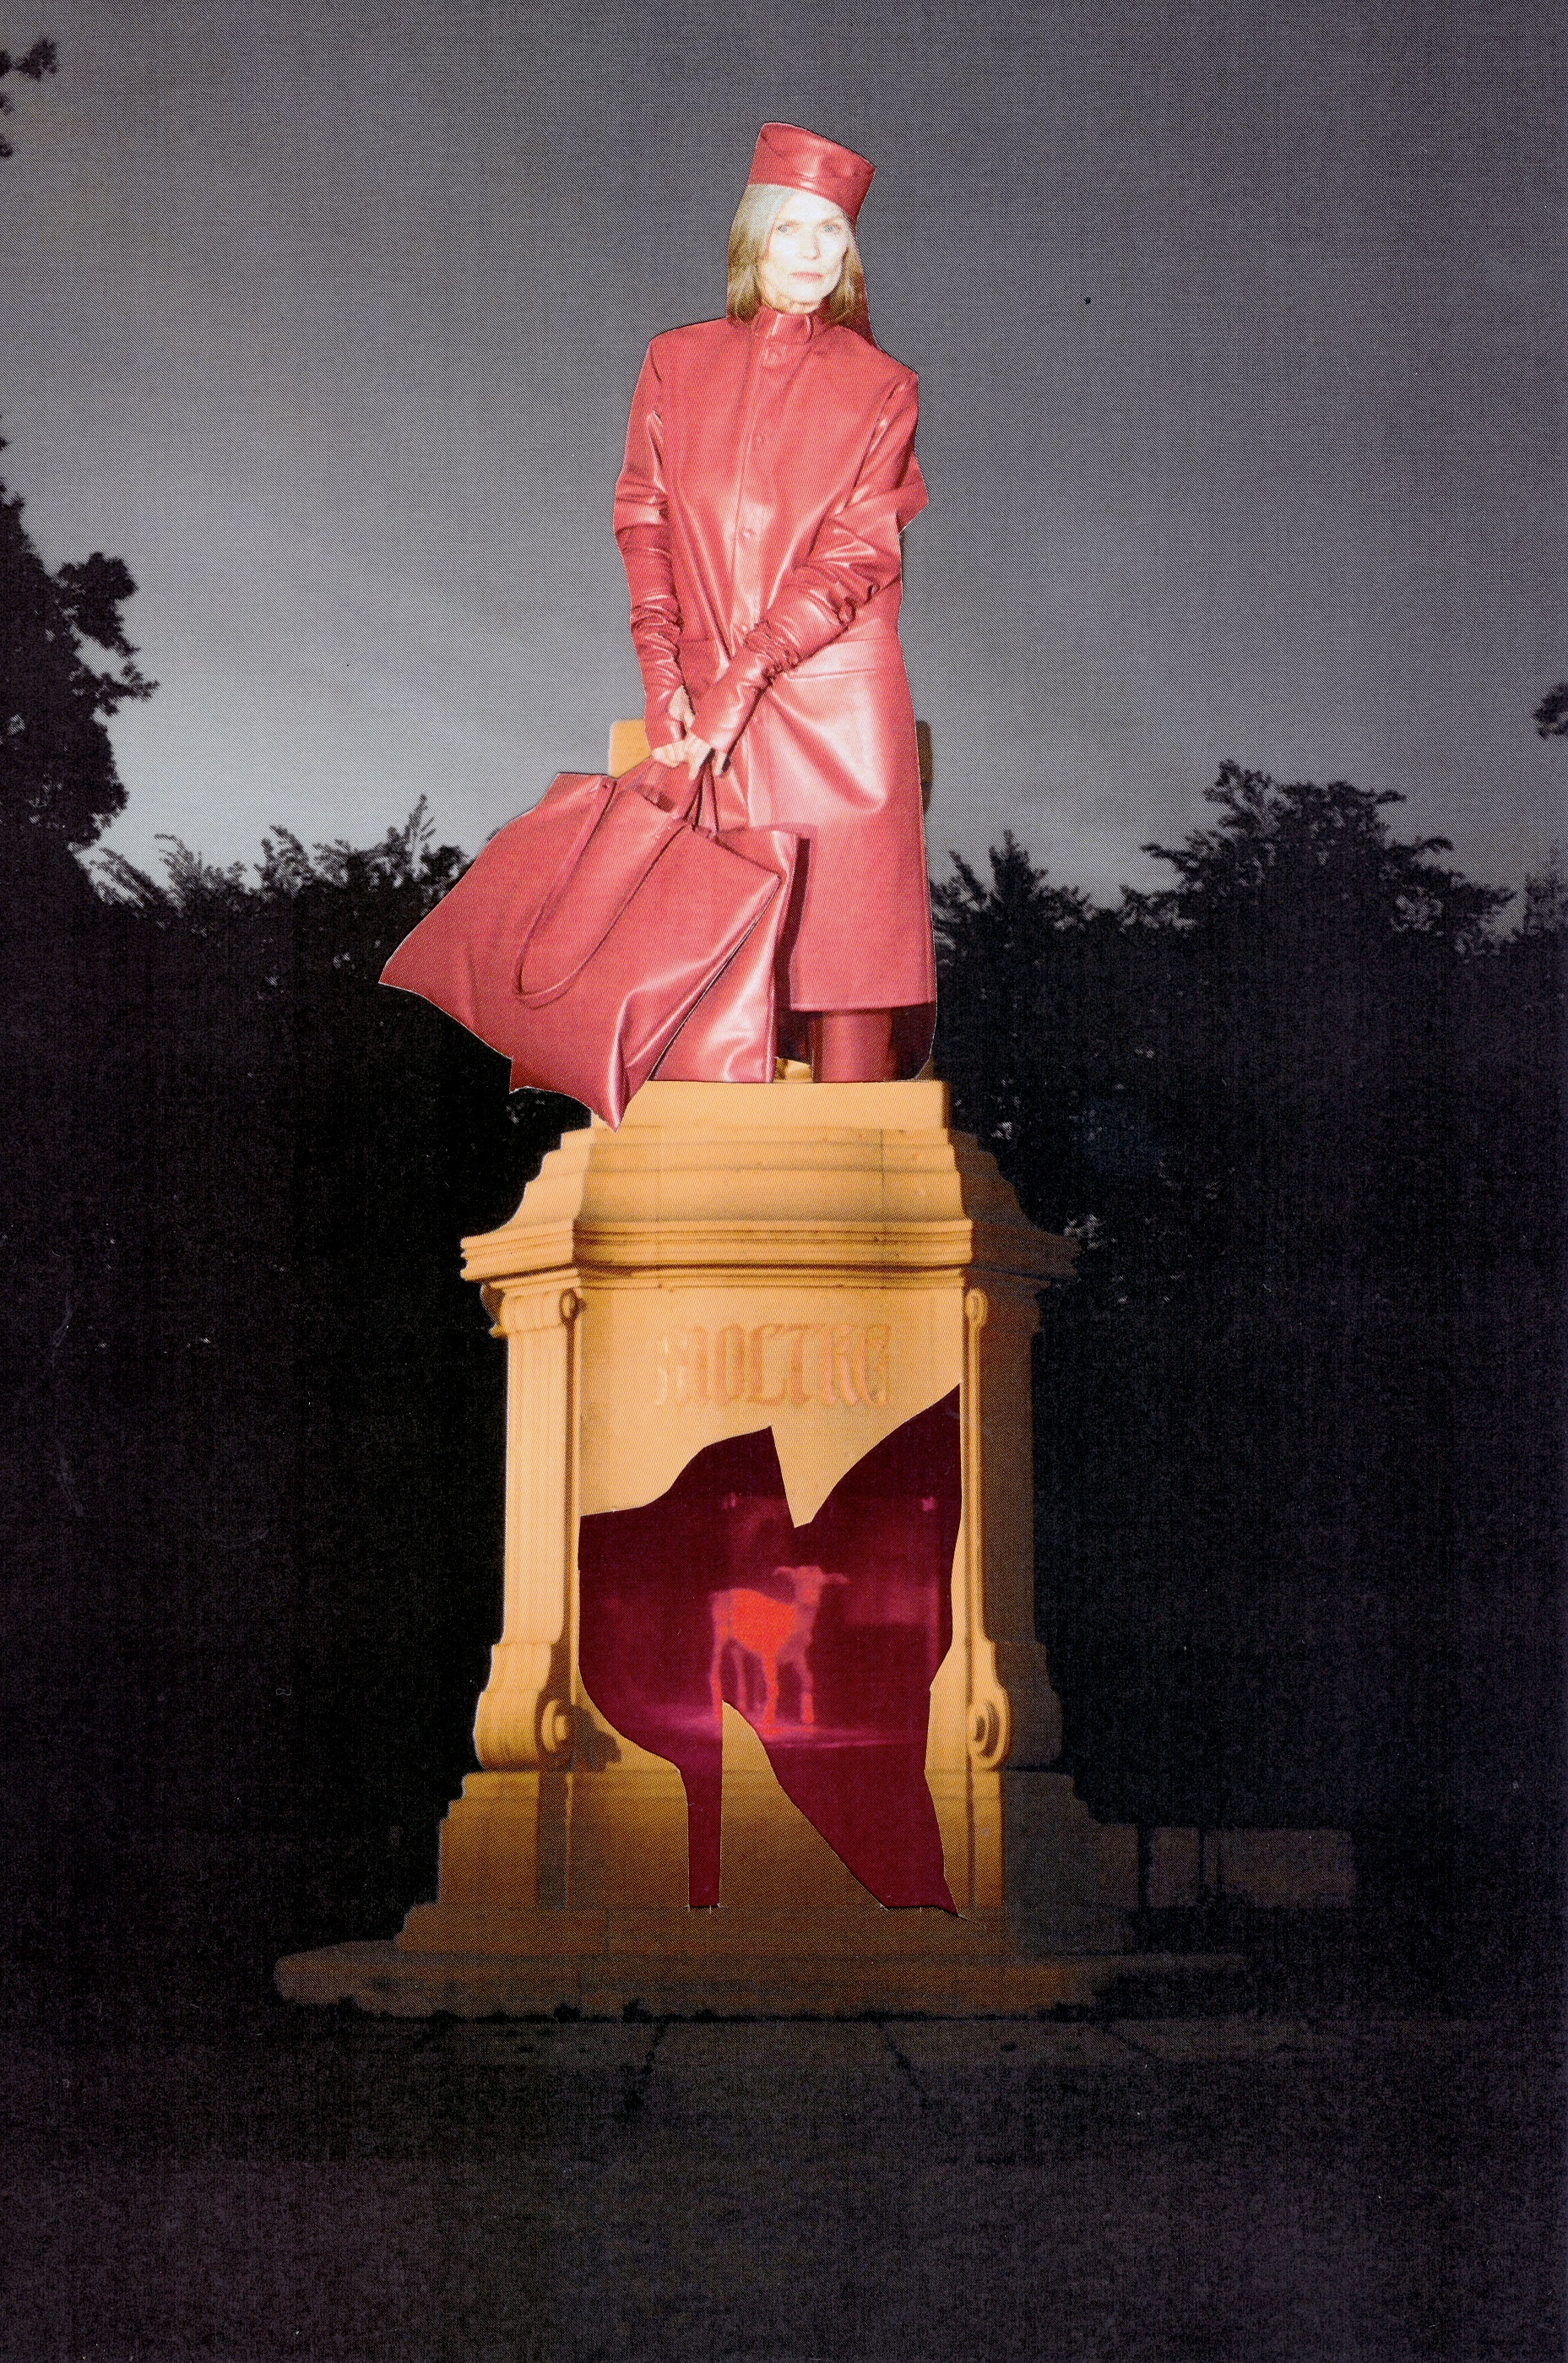 harit-srikhao-uy-berlin-soviet-memorial-older-woman-red-leather